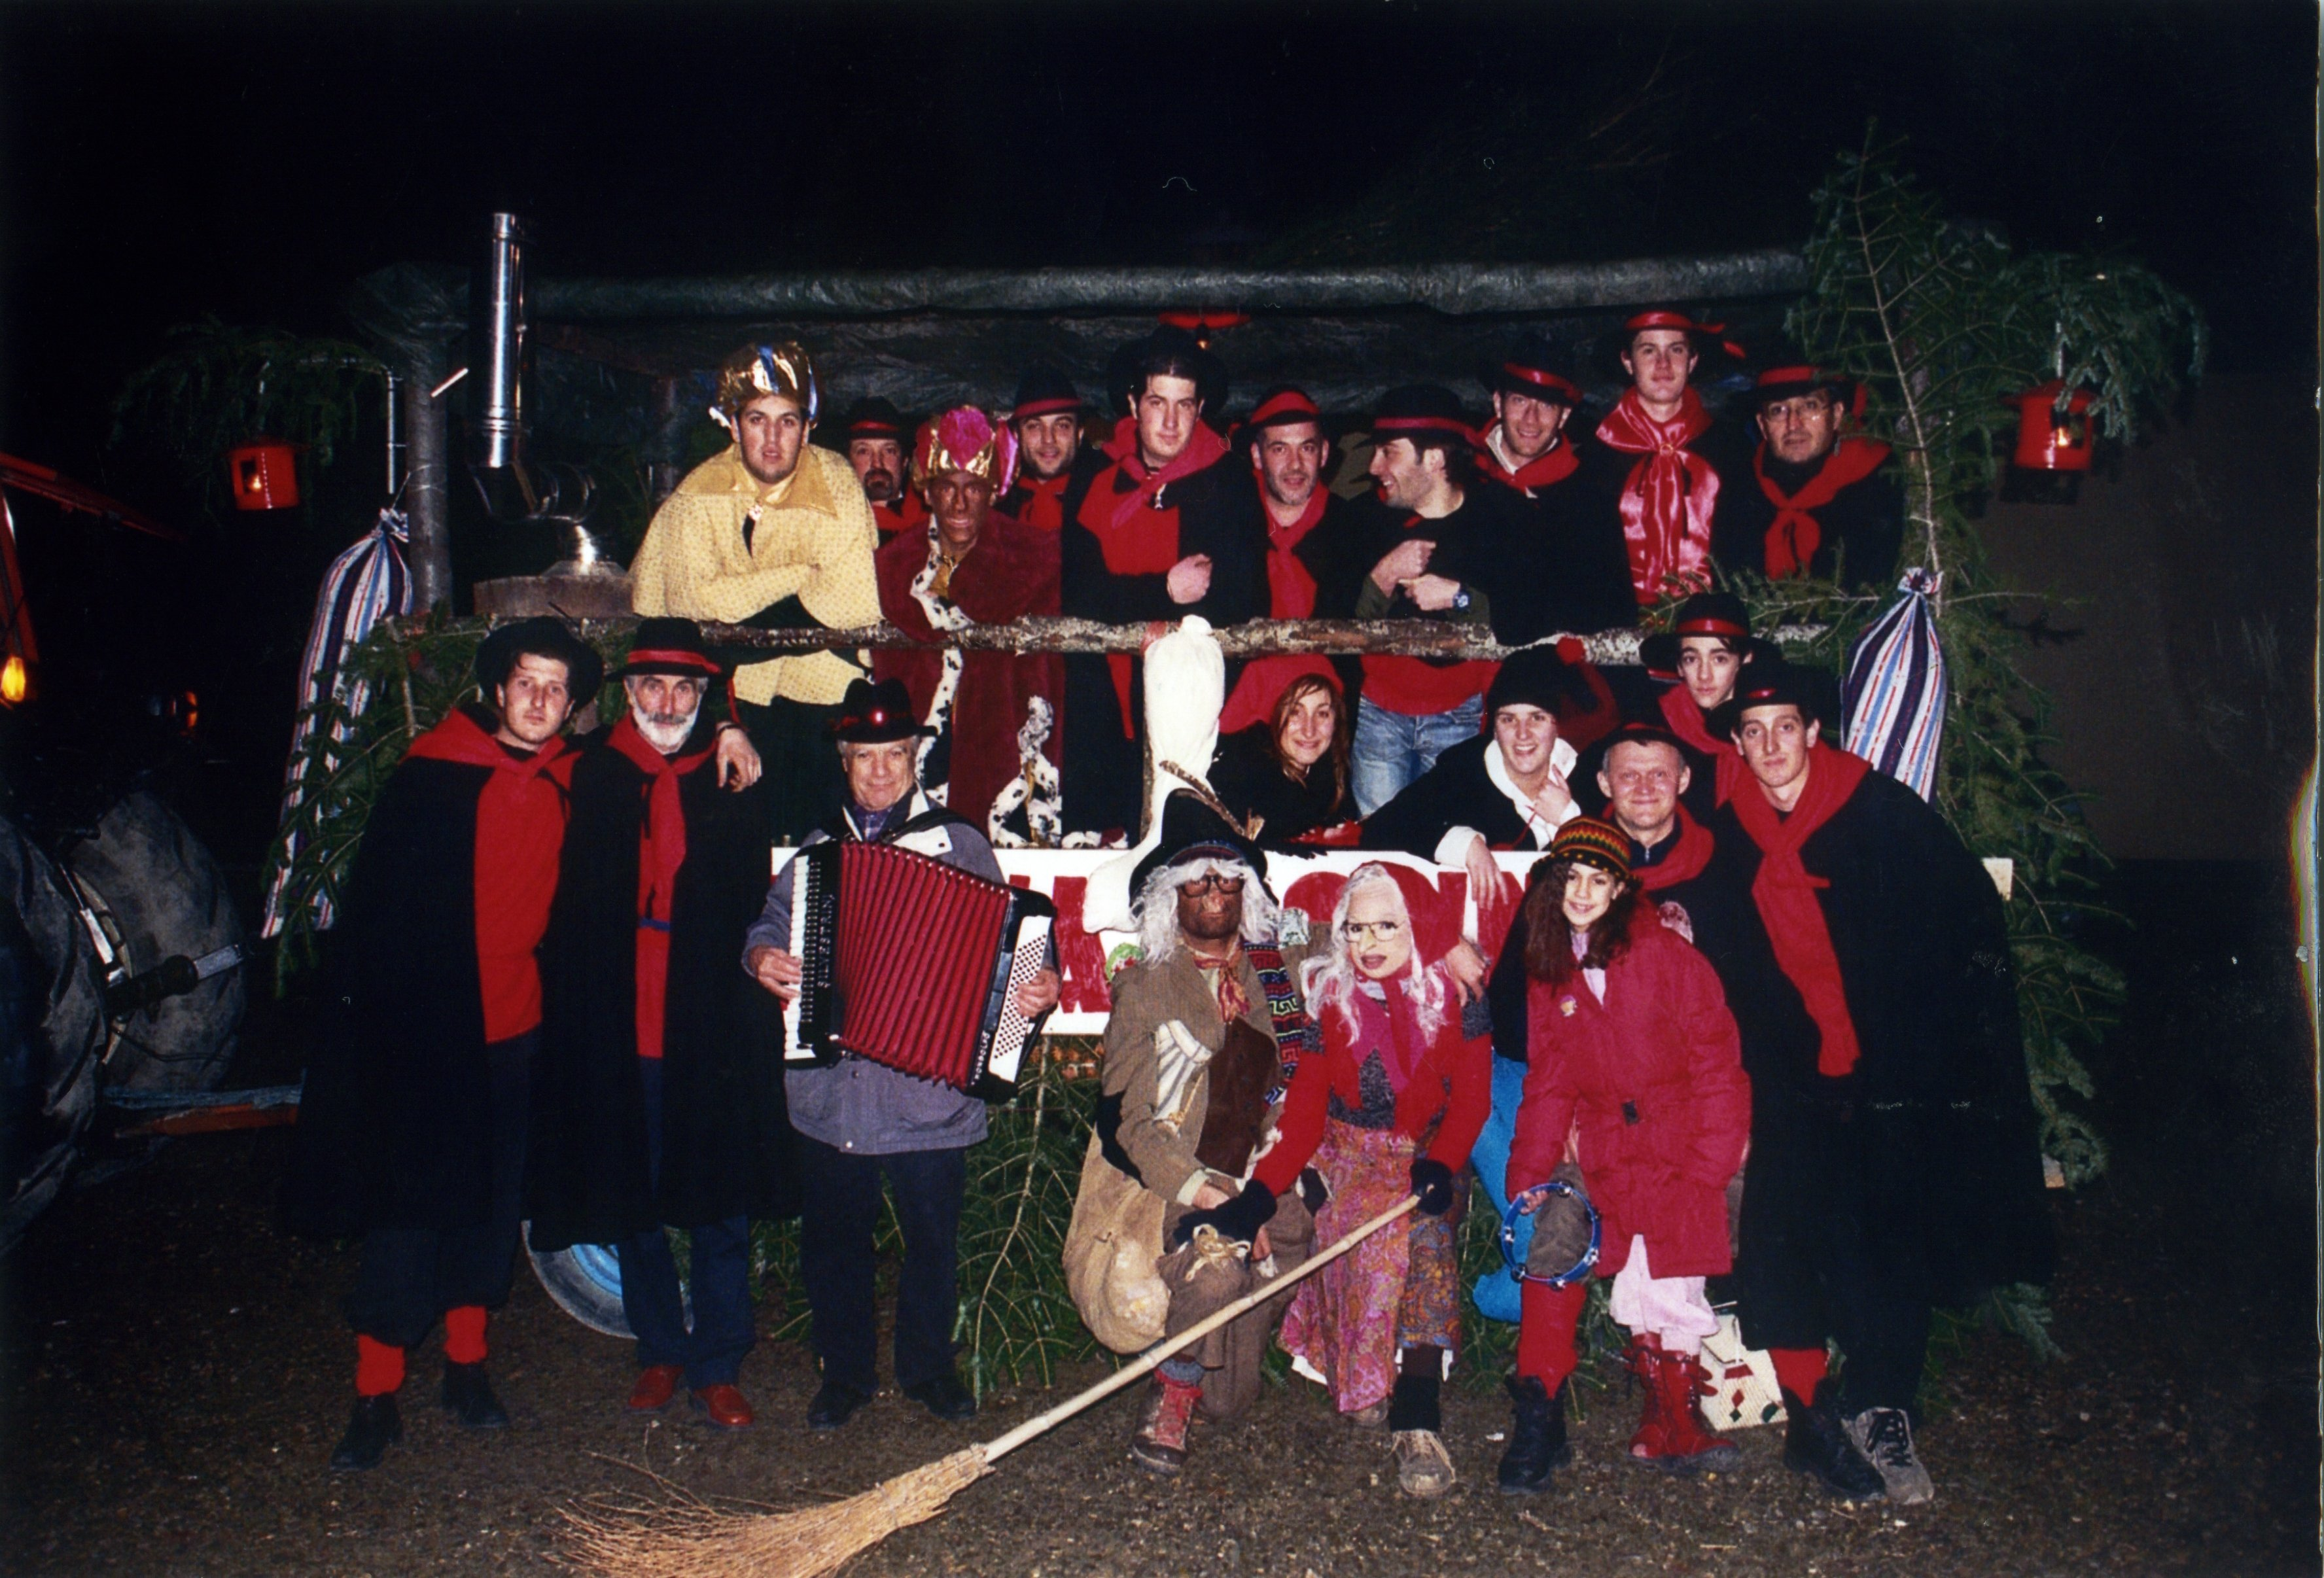 A group of friends and families celebrating the Befana in the Romagna region. Di Cristian Crociani https://commons.wikimedia.org/w/index.php?curid=8668309